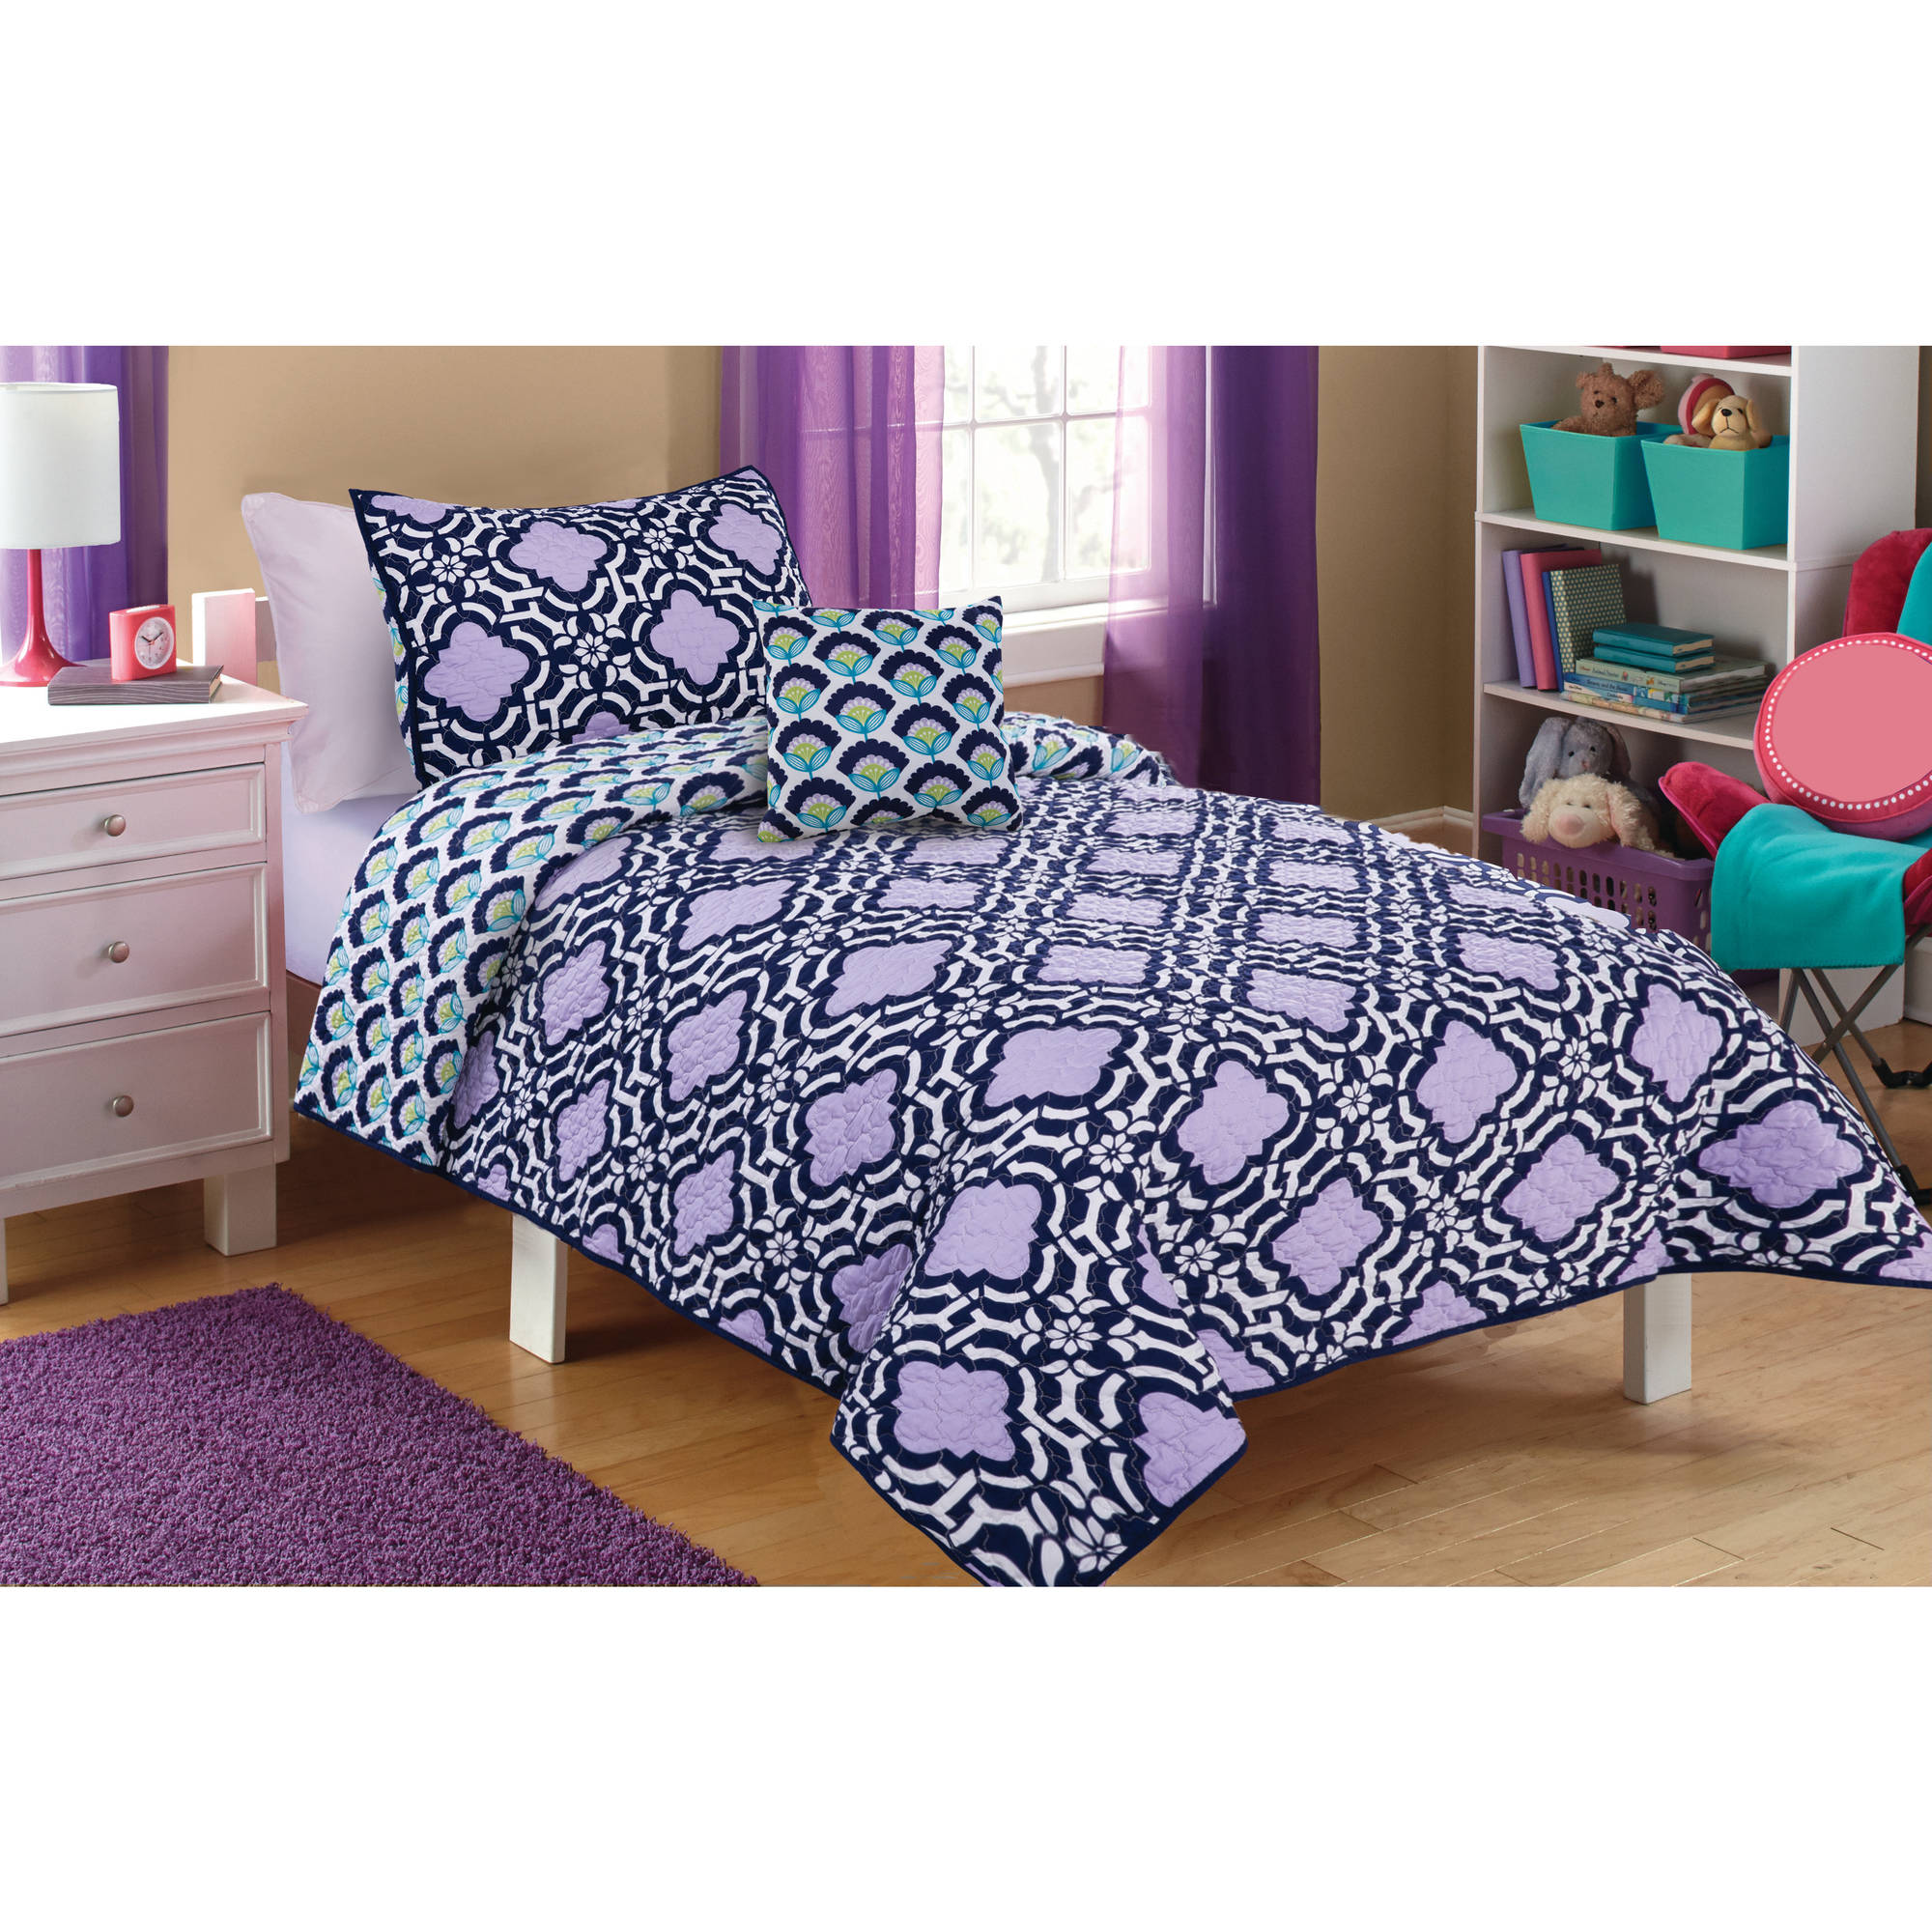 Better Homes & Gardens Kids Indigo Trellis Quilt Set Twin